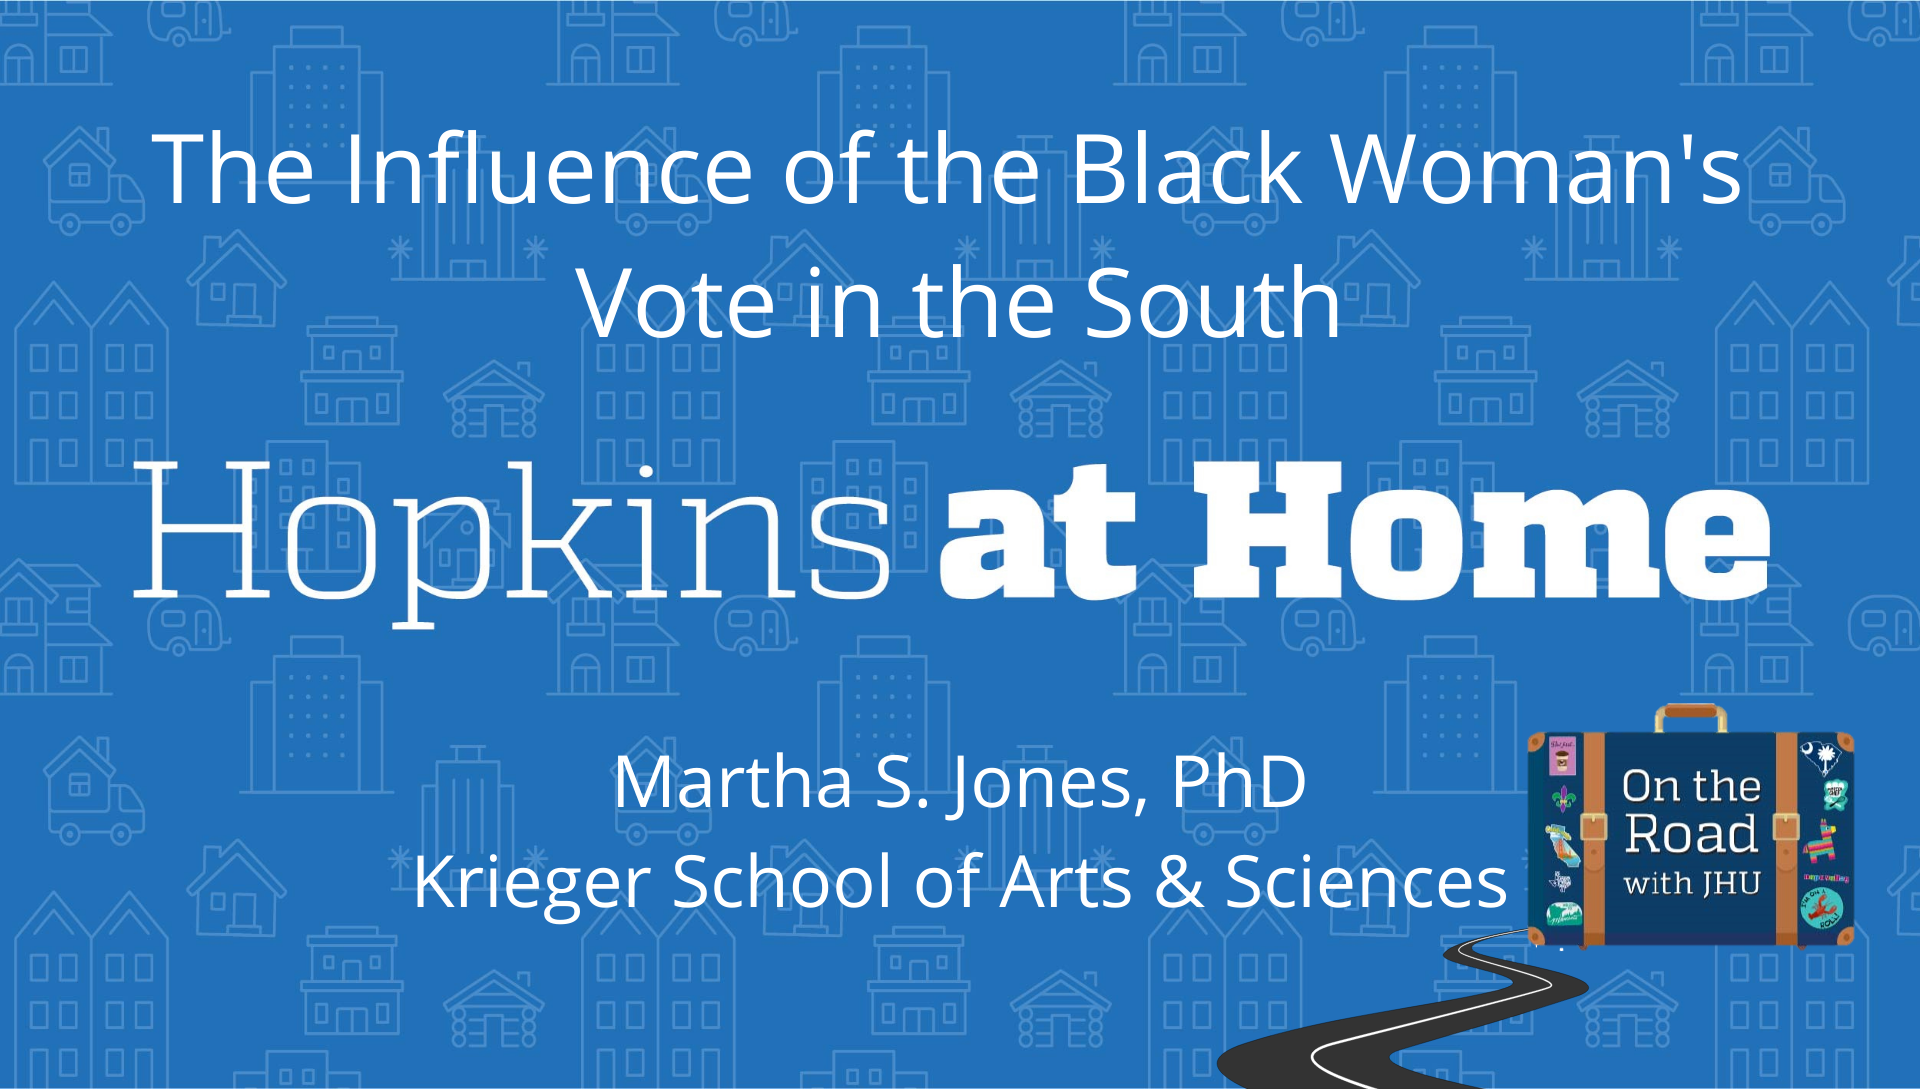 The Influence of the Black Woman's Vote in the South header image